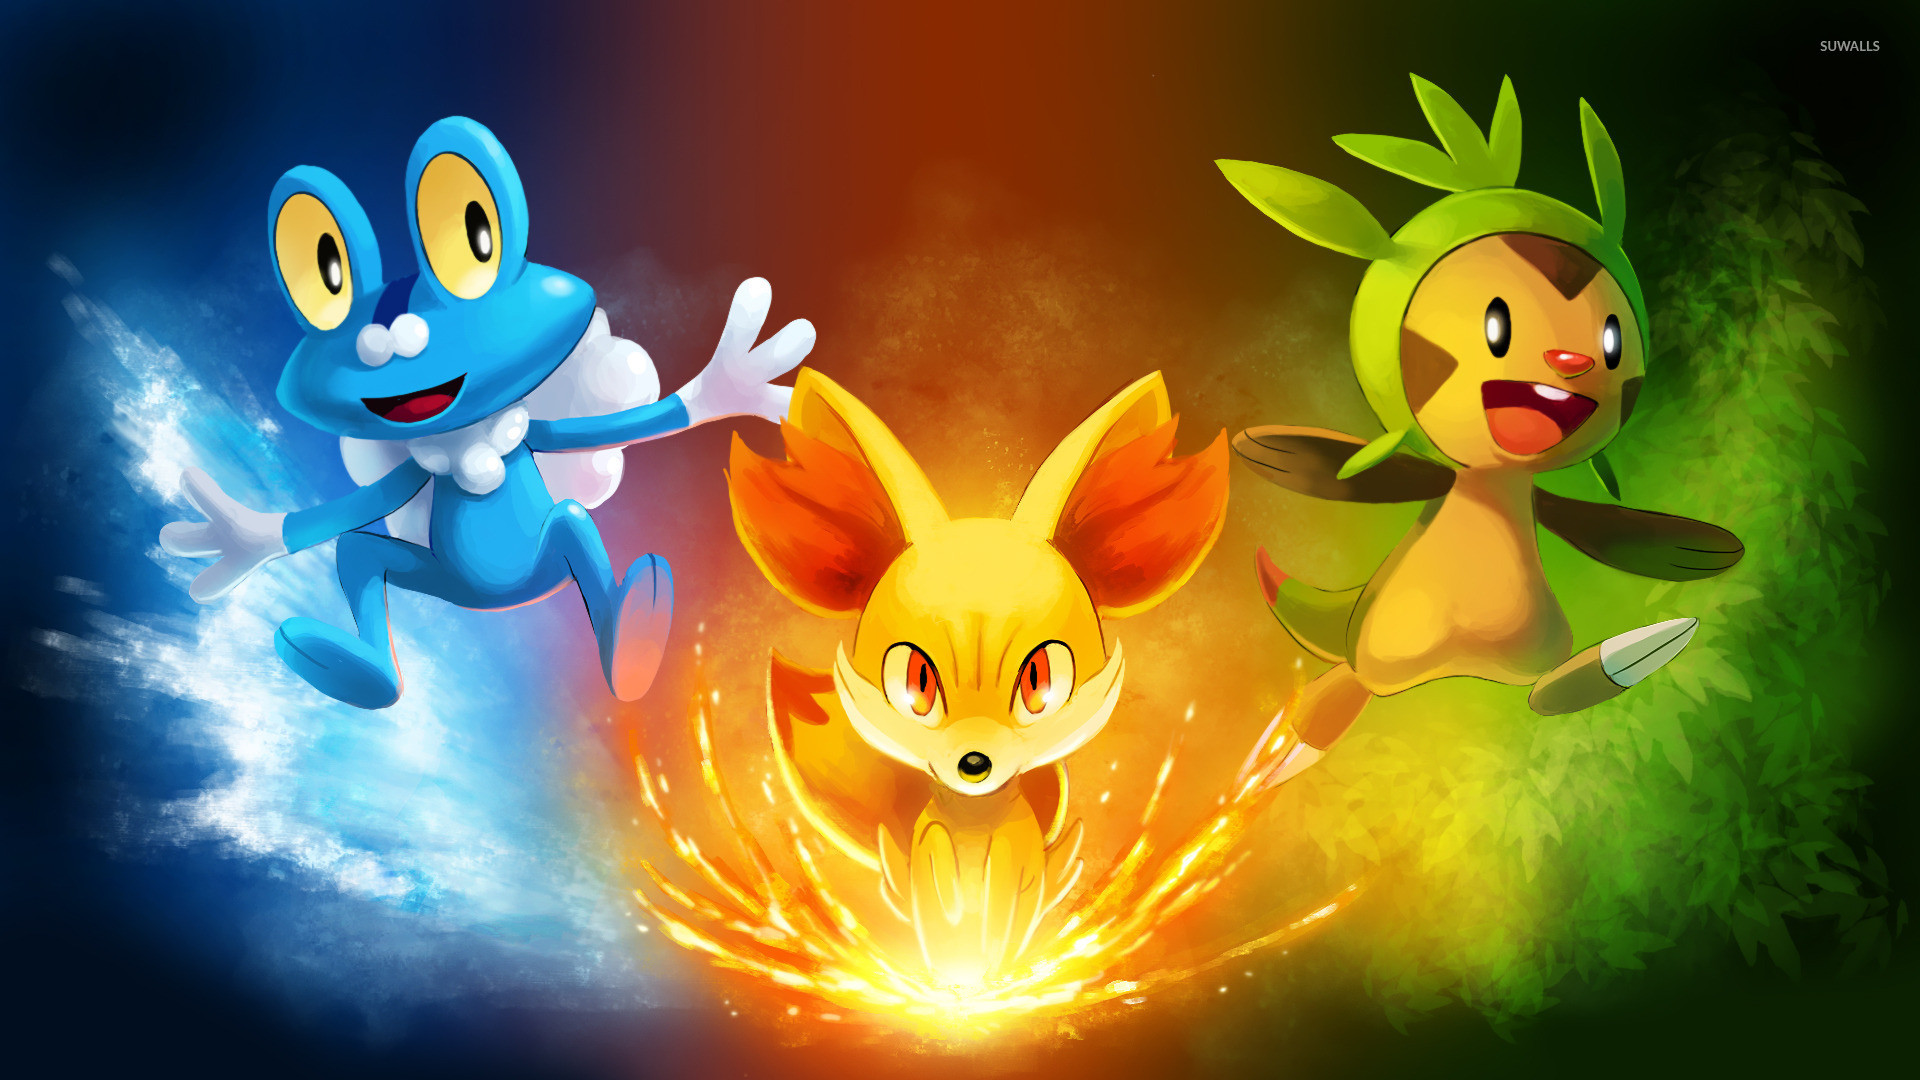 Pokemon X and Y wallpaper – Game wallpapers – #21692